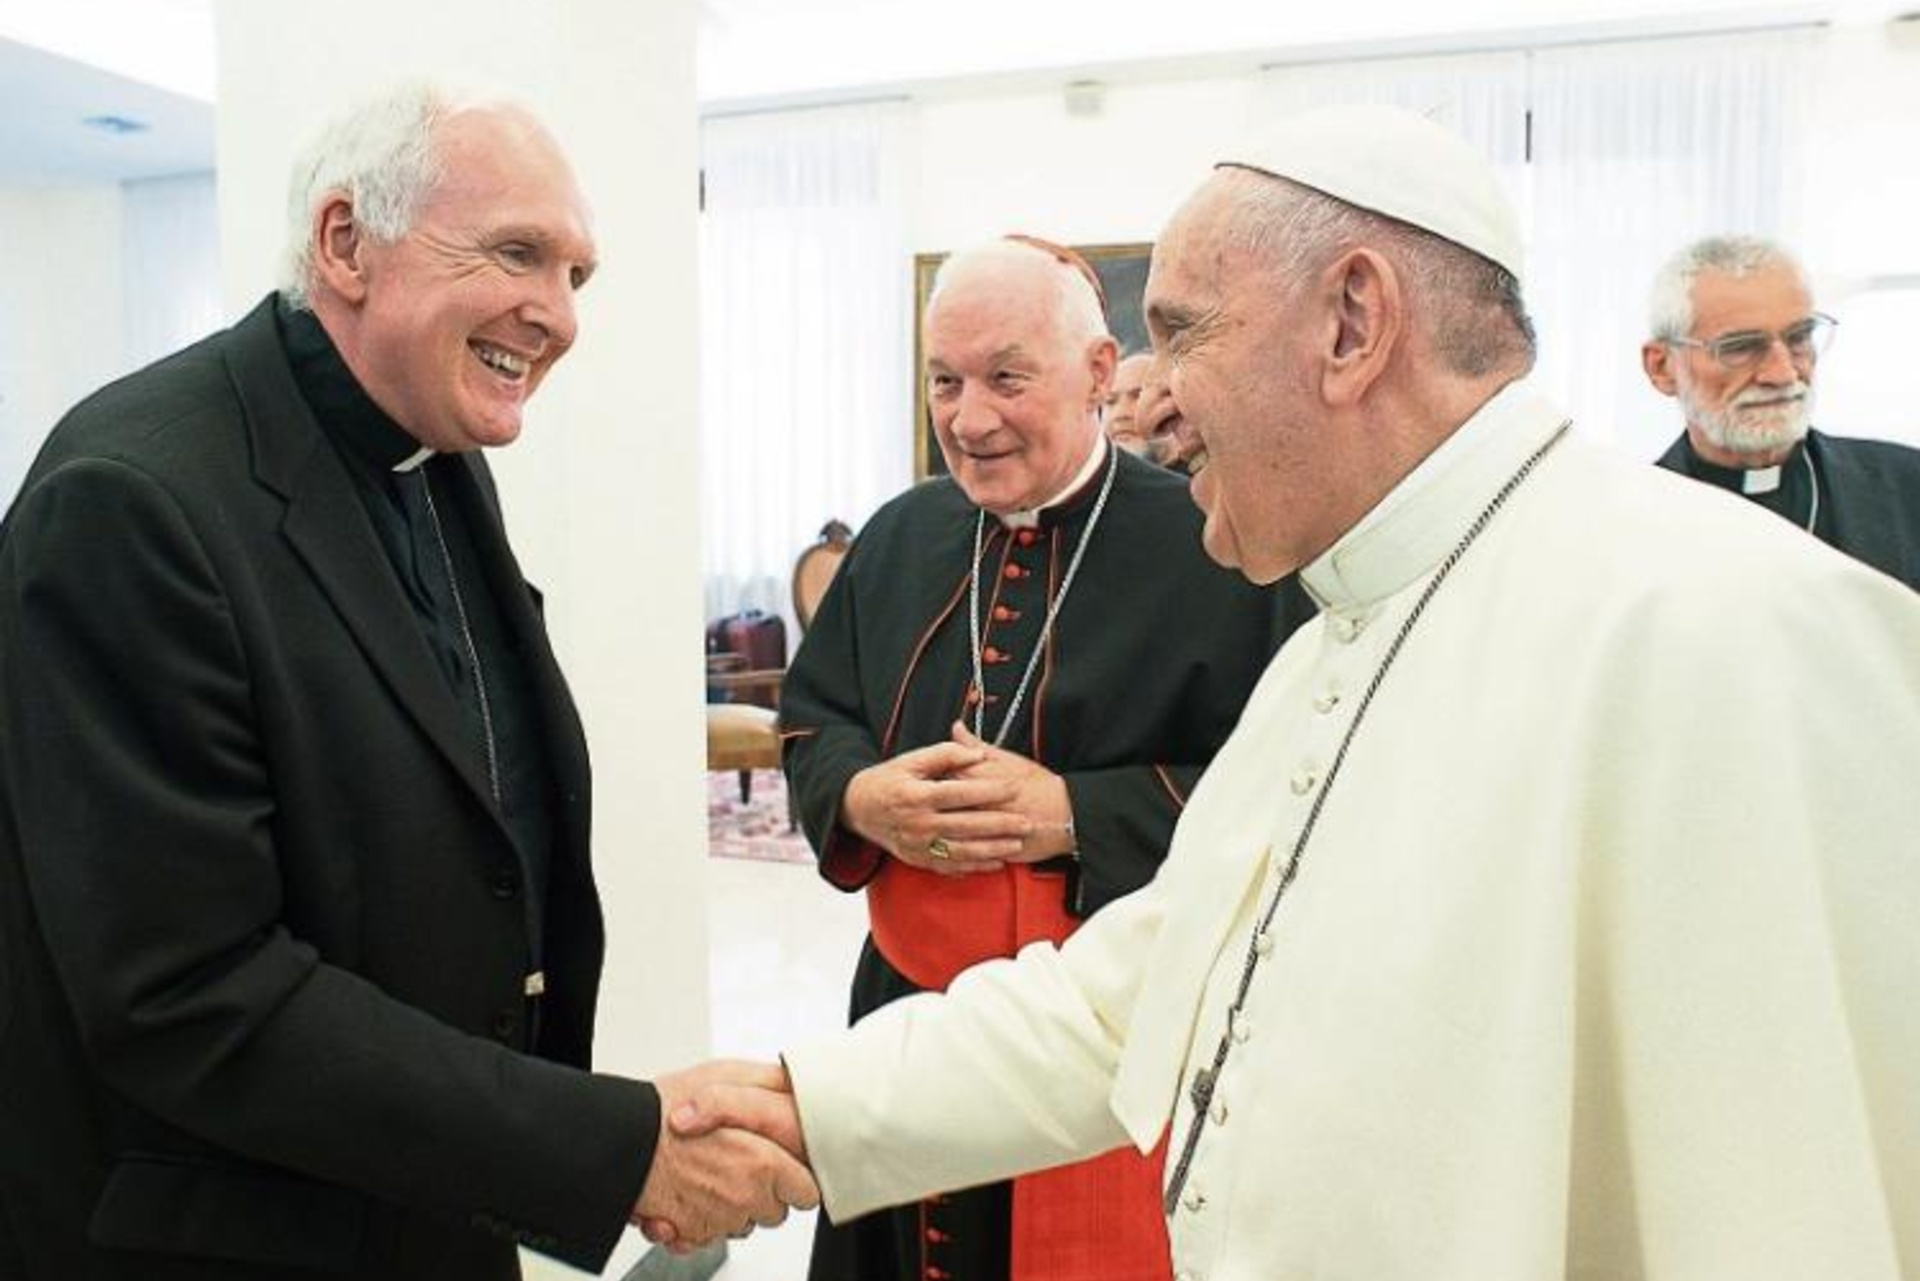 Pope conveys special fondness for Limerick, says Bishop Leahy after lunch with Pontiff